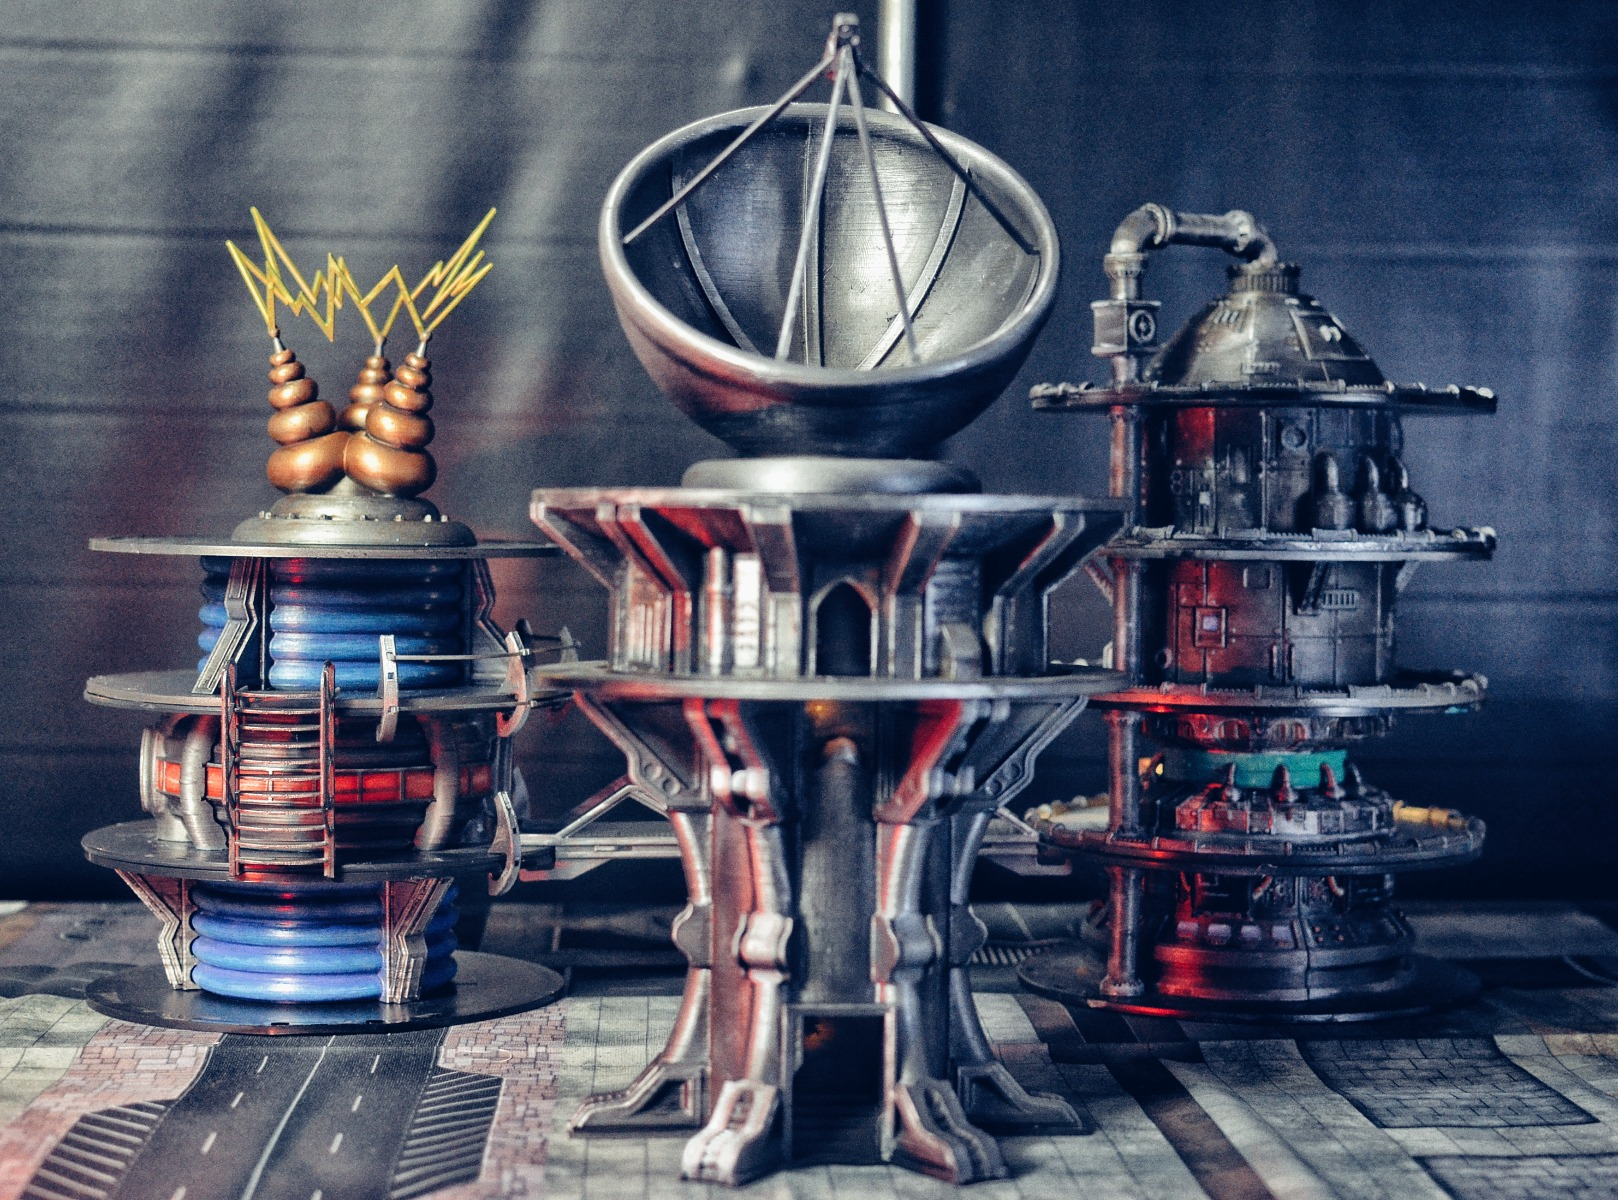 Creative recycled scenery for tabletop gaming